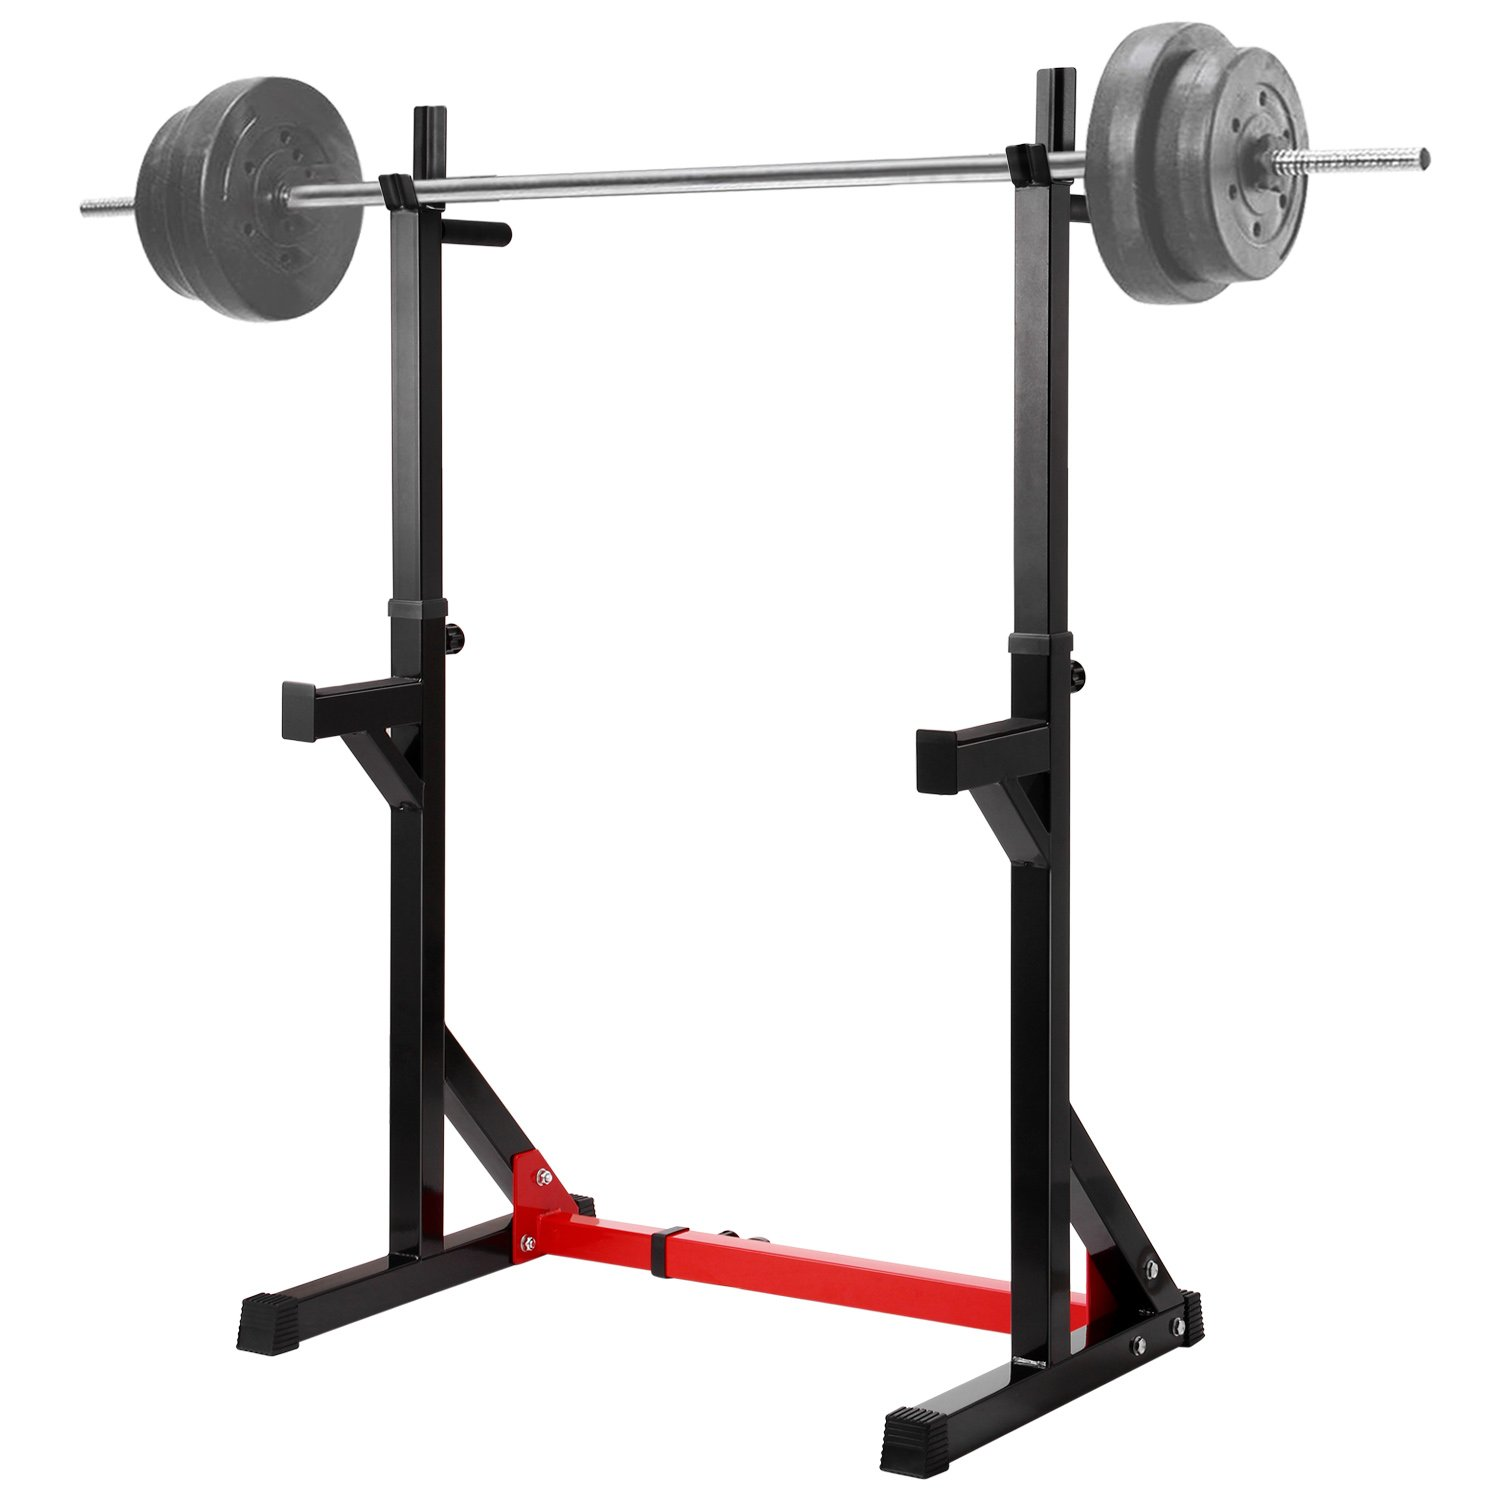 Ollieroo Multi-function Barbell Rack Dip Stand Gym Family Fitness Adjustable Squat Rack Weight Lifting Bench Press Dipping Station by Ollieroo